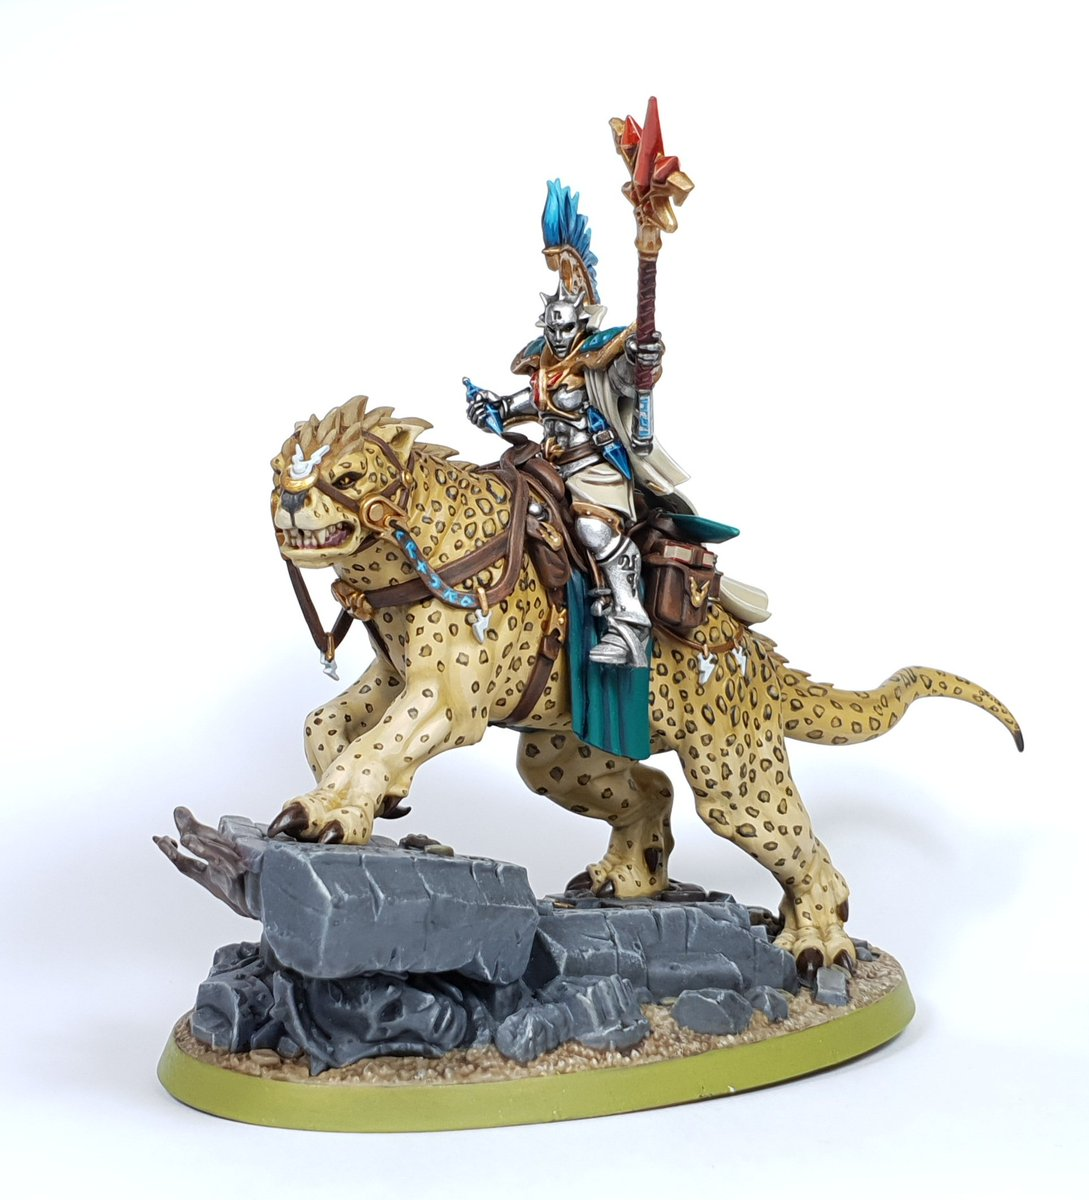 #ThrowbackThursday this is still one of my favourite stormcast models.  Do you have a pride piece in your collection?  #ageofsigmar #aos #gamesworkshop  #paintingminis #painting #hobby #sharethehobbylove  #paintingwarhammer #warhammercommunity #arylicpainting https://t.co/6f0f4lfwbd